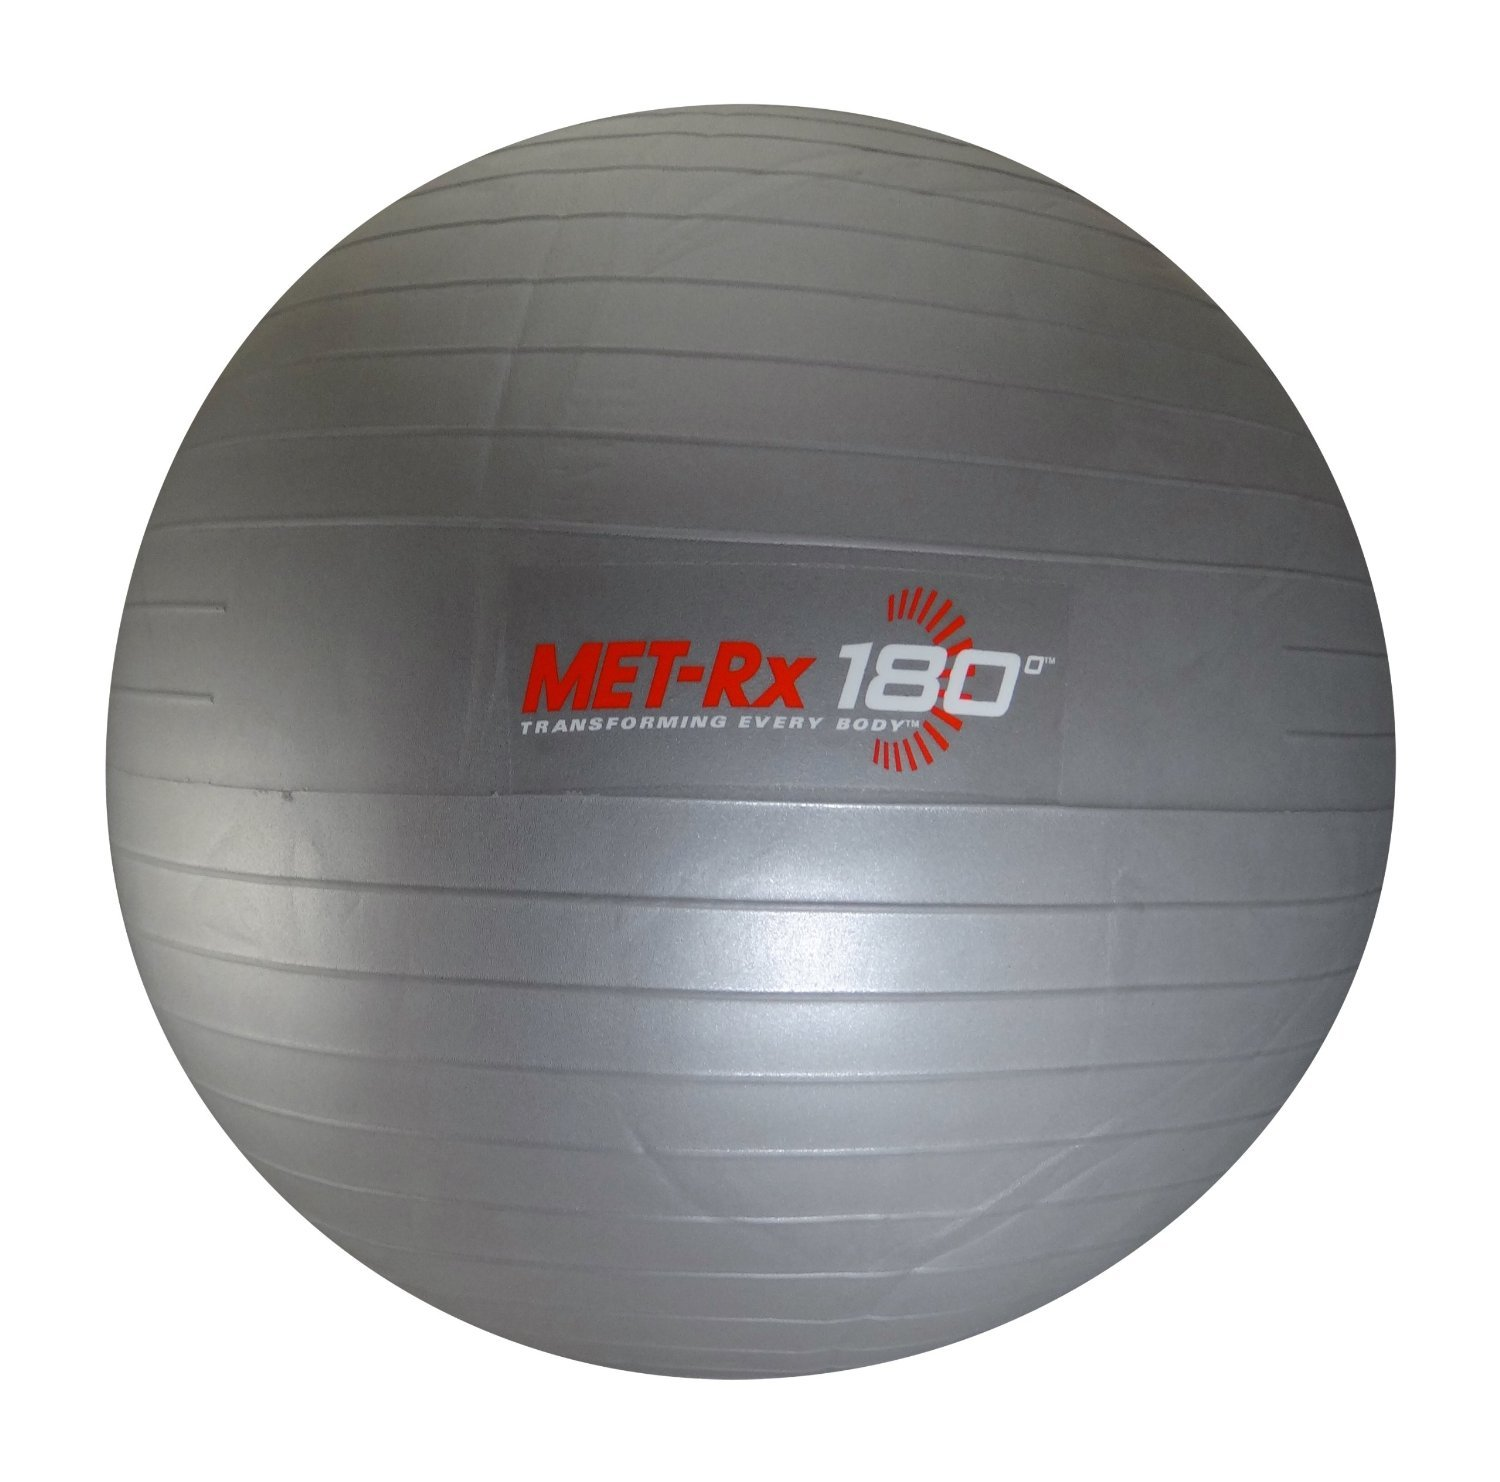 Met Rx Fitness Exercise Ball & Level 2 Resistance Exercise Bands Set